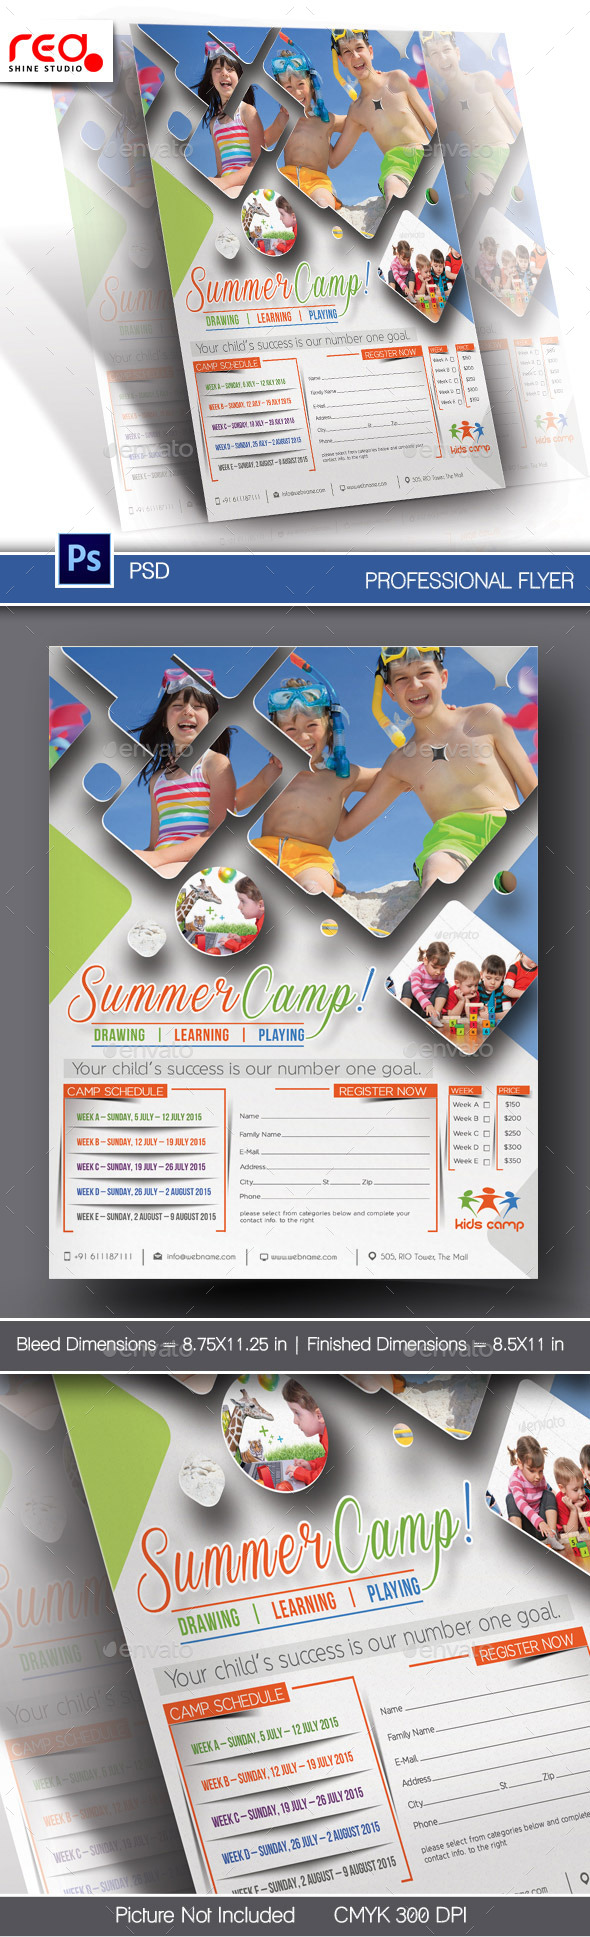 GraphicRiver Summer Camp Flyer Template 10762937